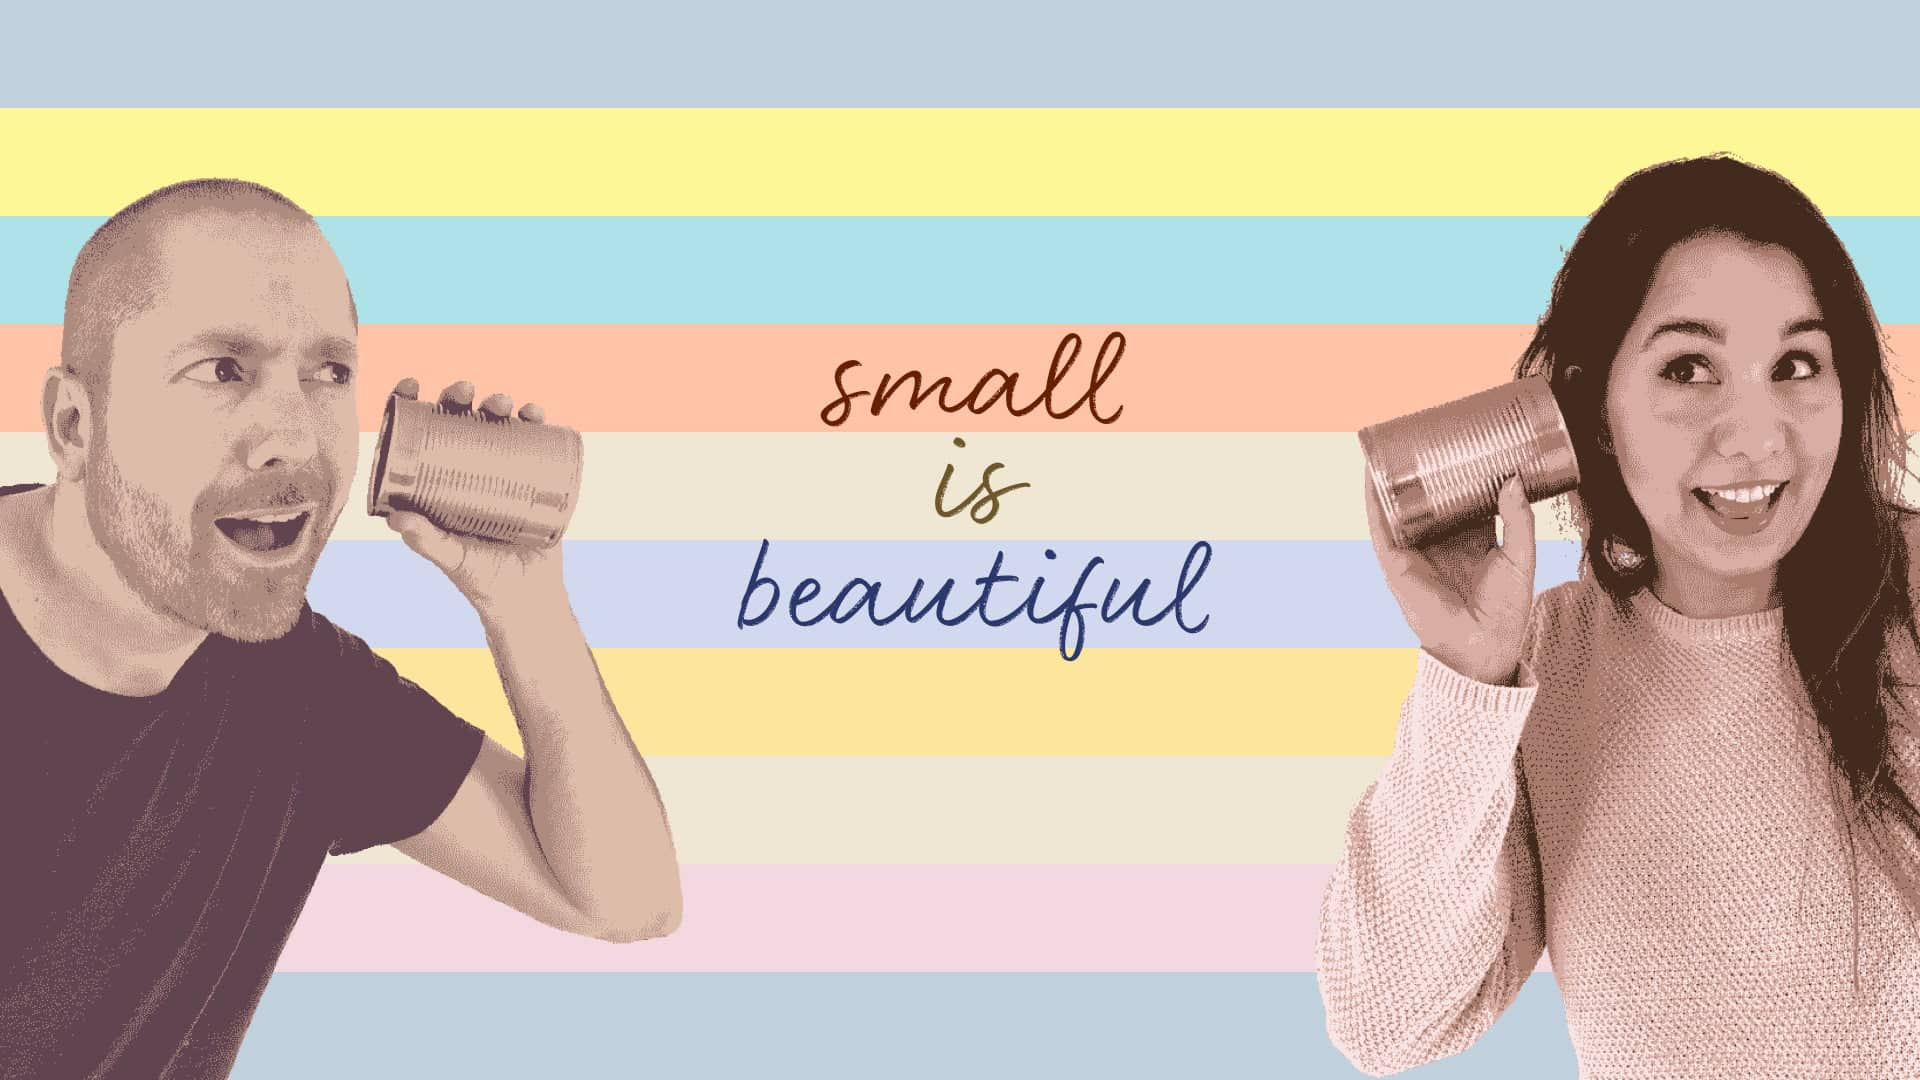 .hugo/content/videos/small-is-beautiful-10/small-is-beautiful.jpg